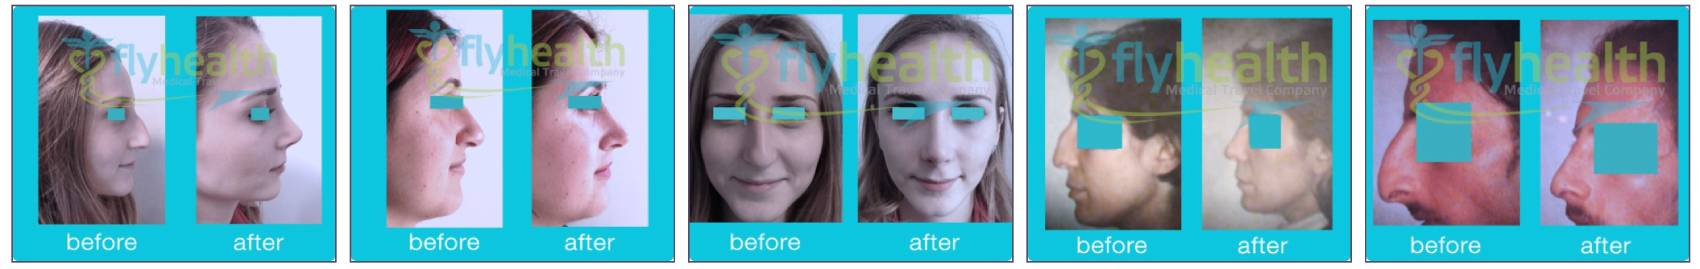 Nose Job Turkey Before After